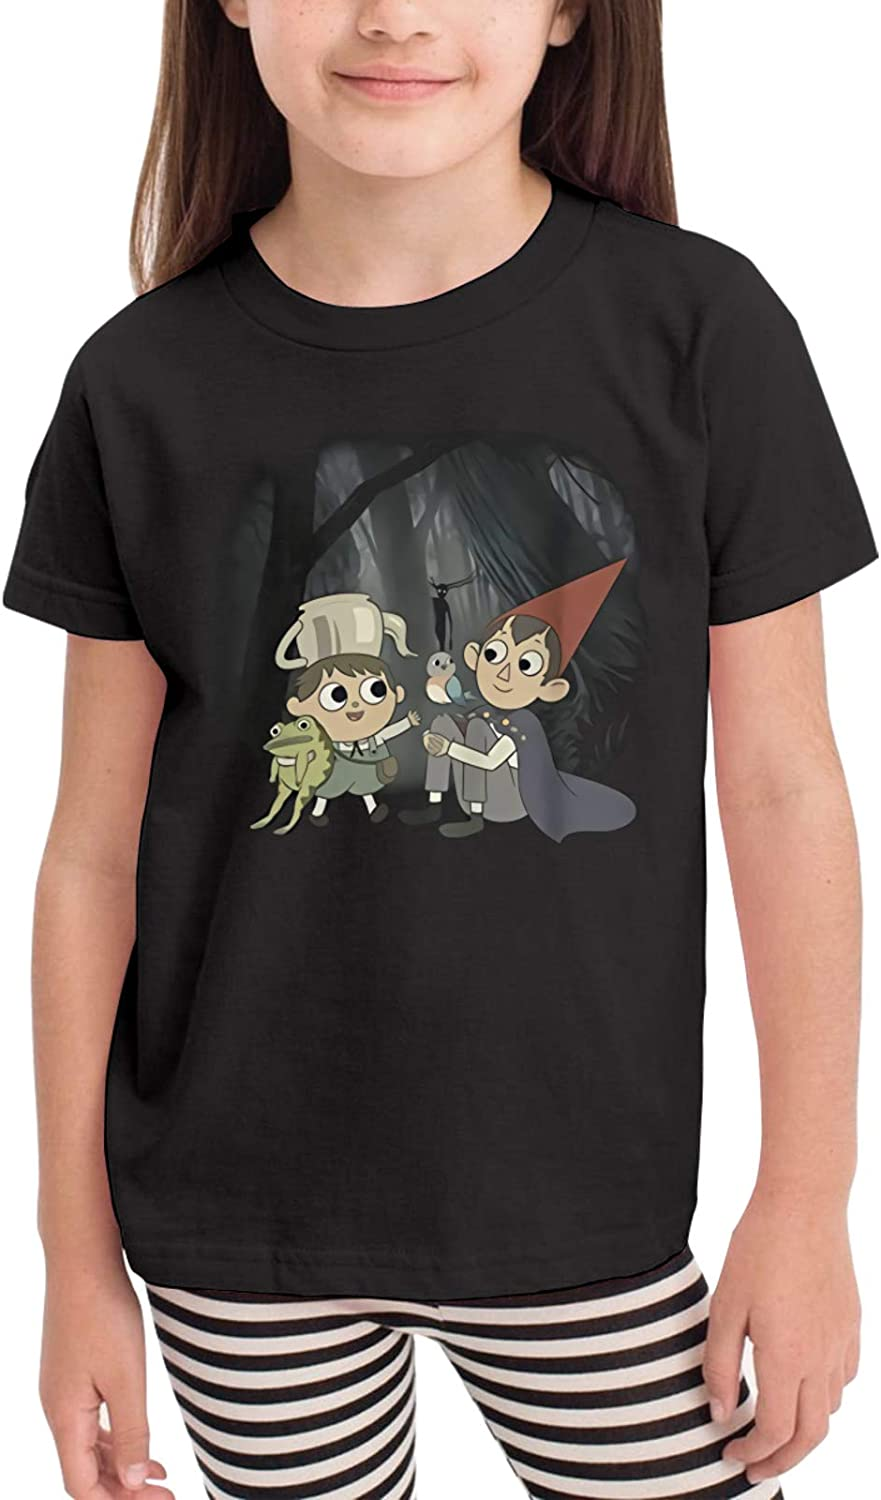 Over The Garden Wall Stylish and Cute 2-6 Years Old Boys & Grils Short Sleeve Crewneck Casual Fashion T Shirt